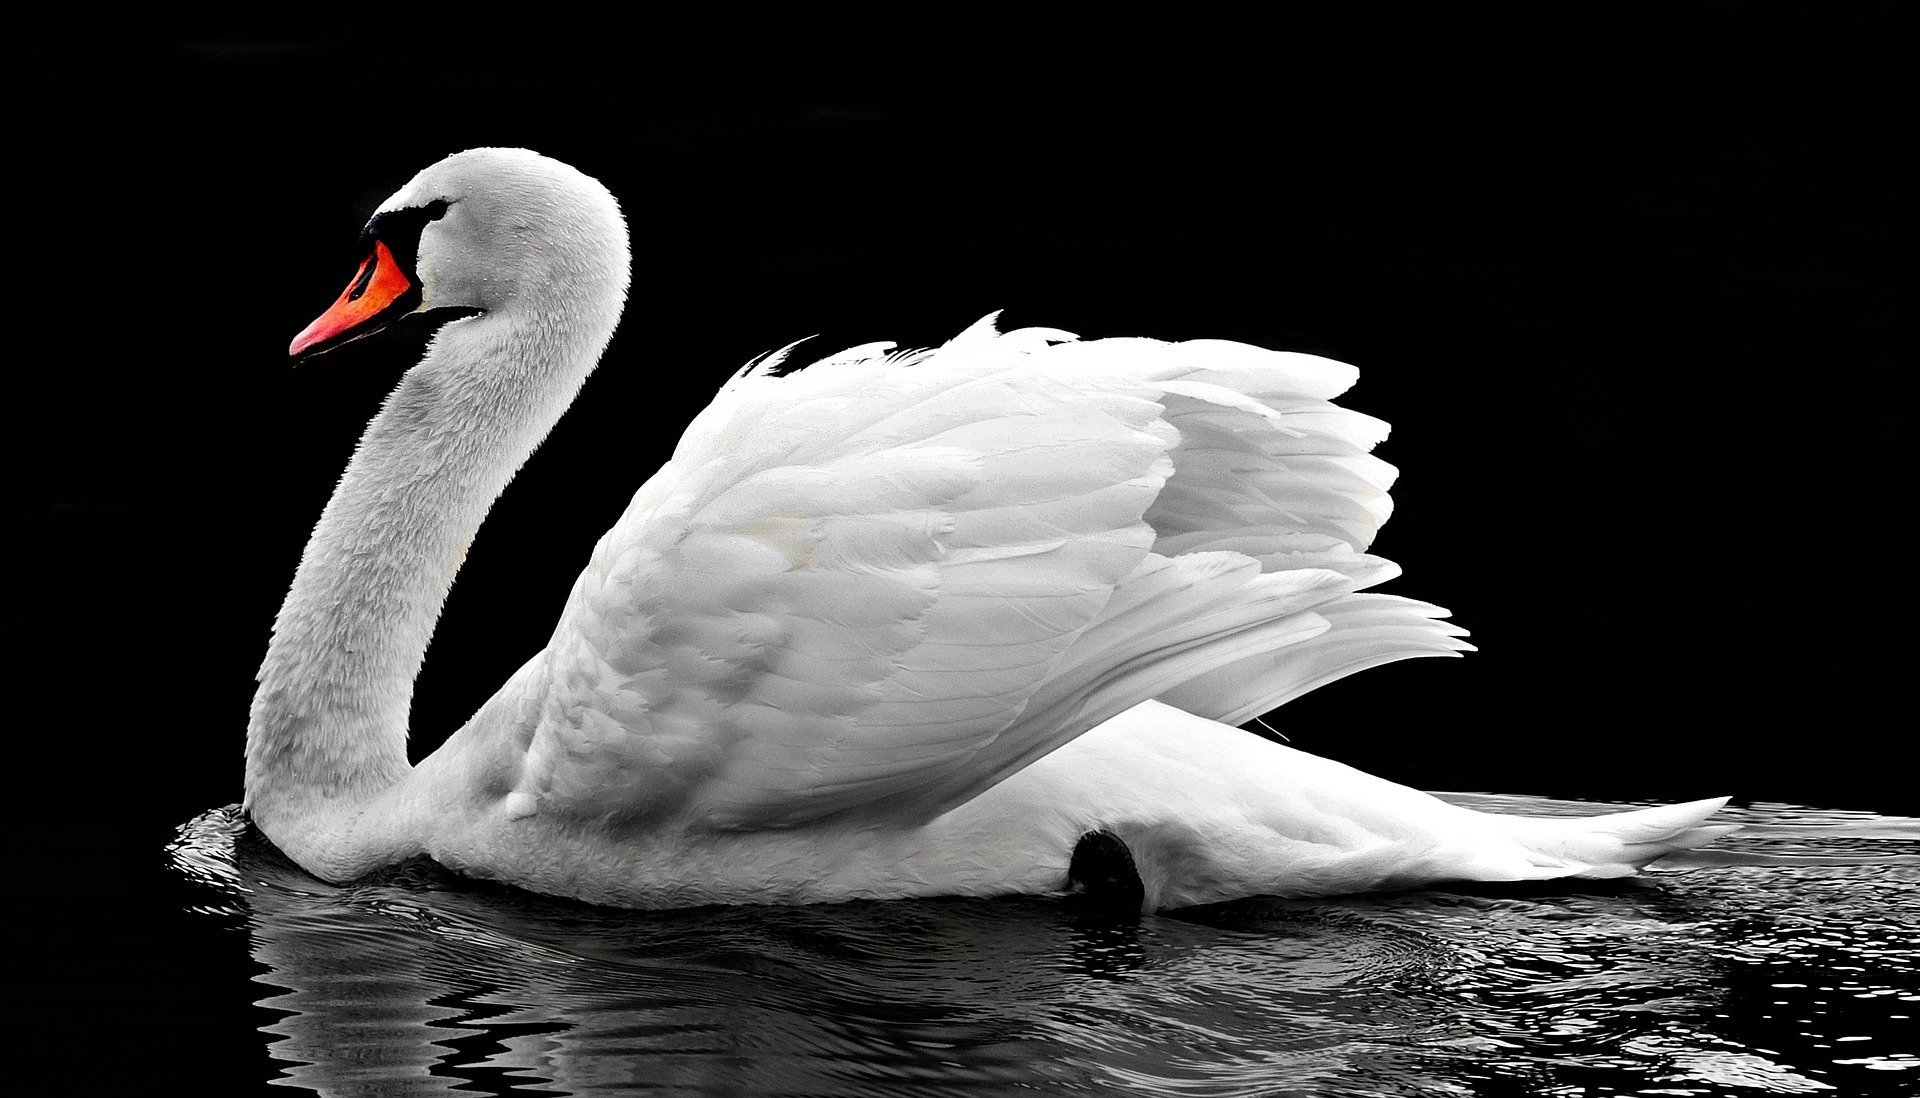 A swan swimming on a sunny day. | Source: Pixabay.com